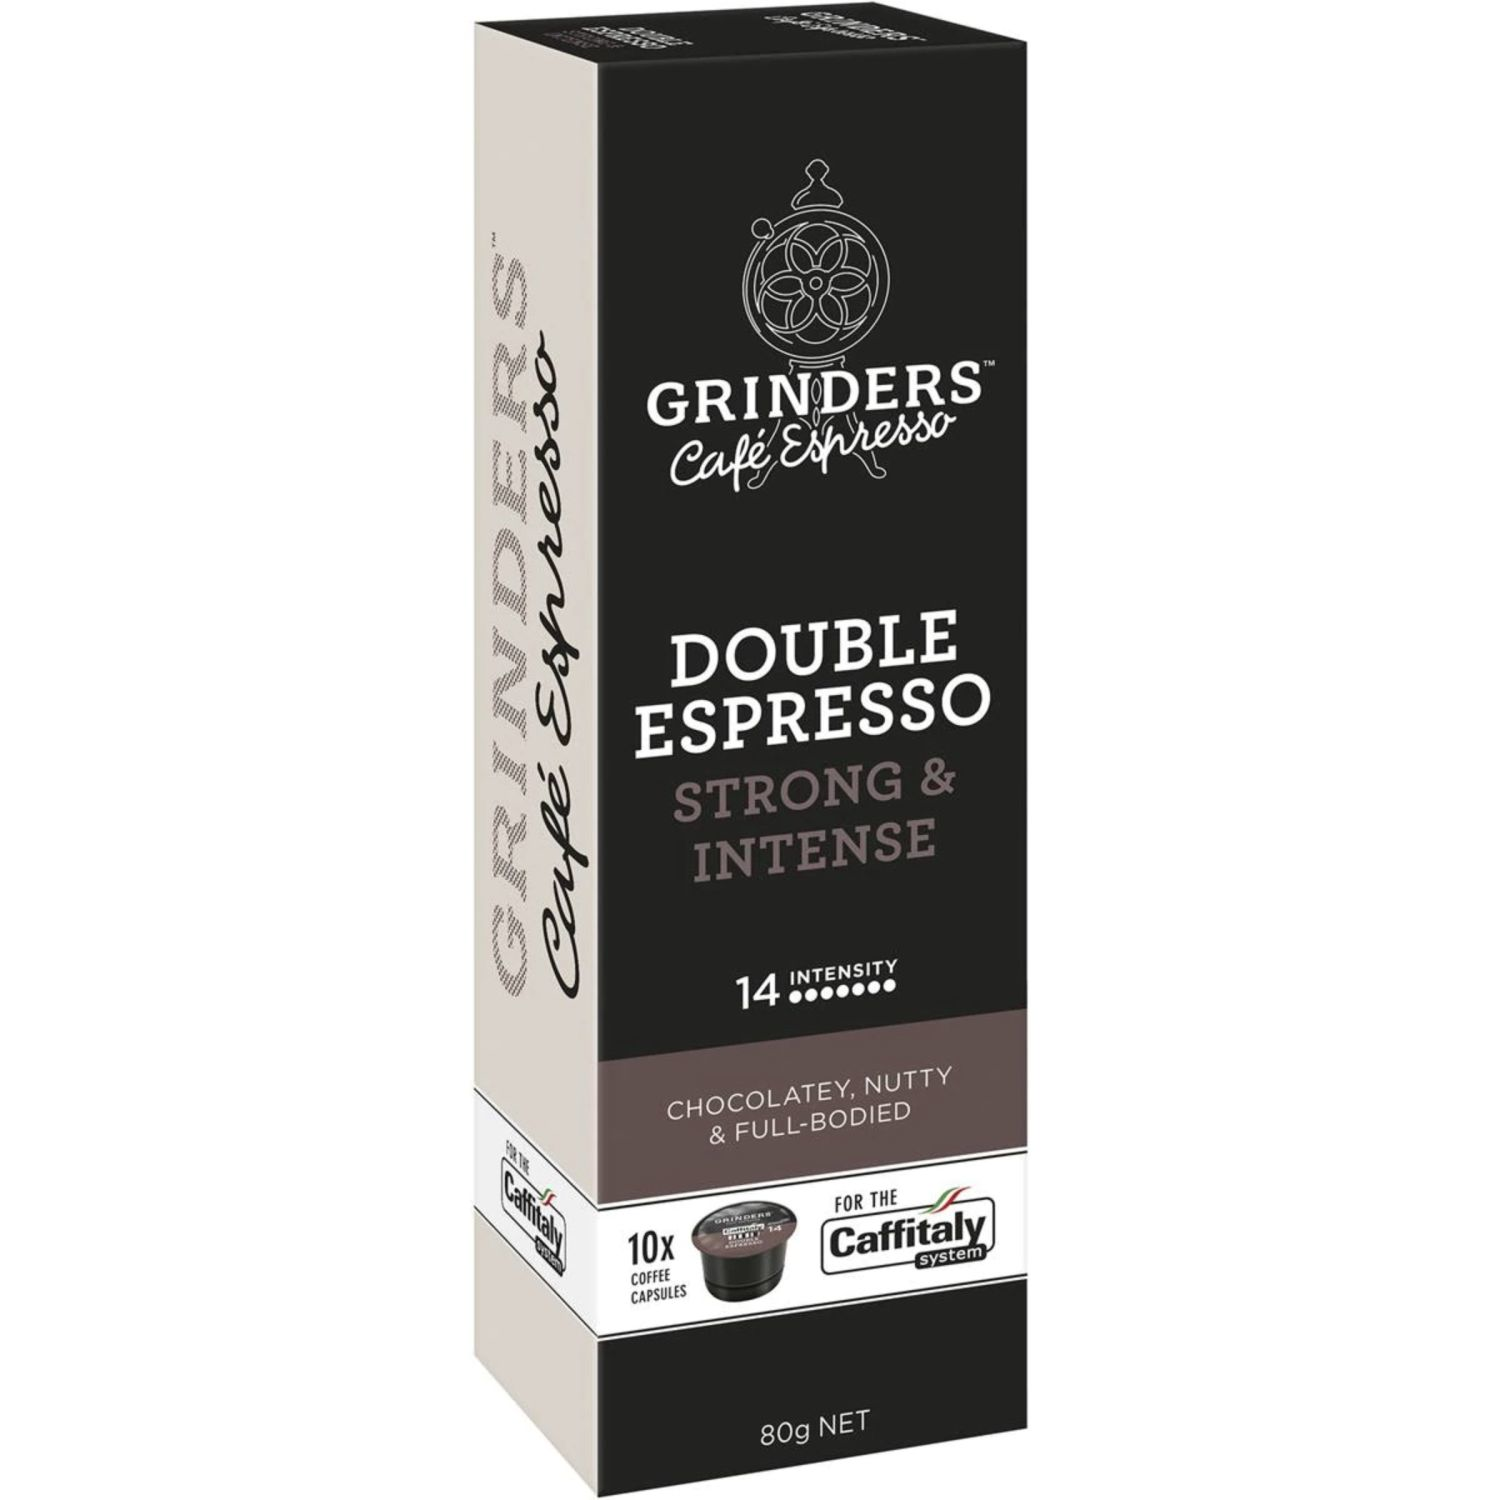 Grinders Coffee Capsules Double Espresso Caffitaly System, 10 Each